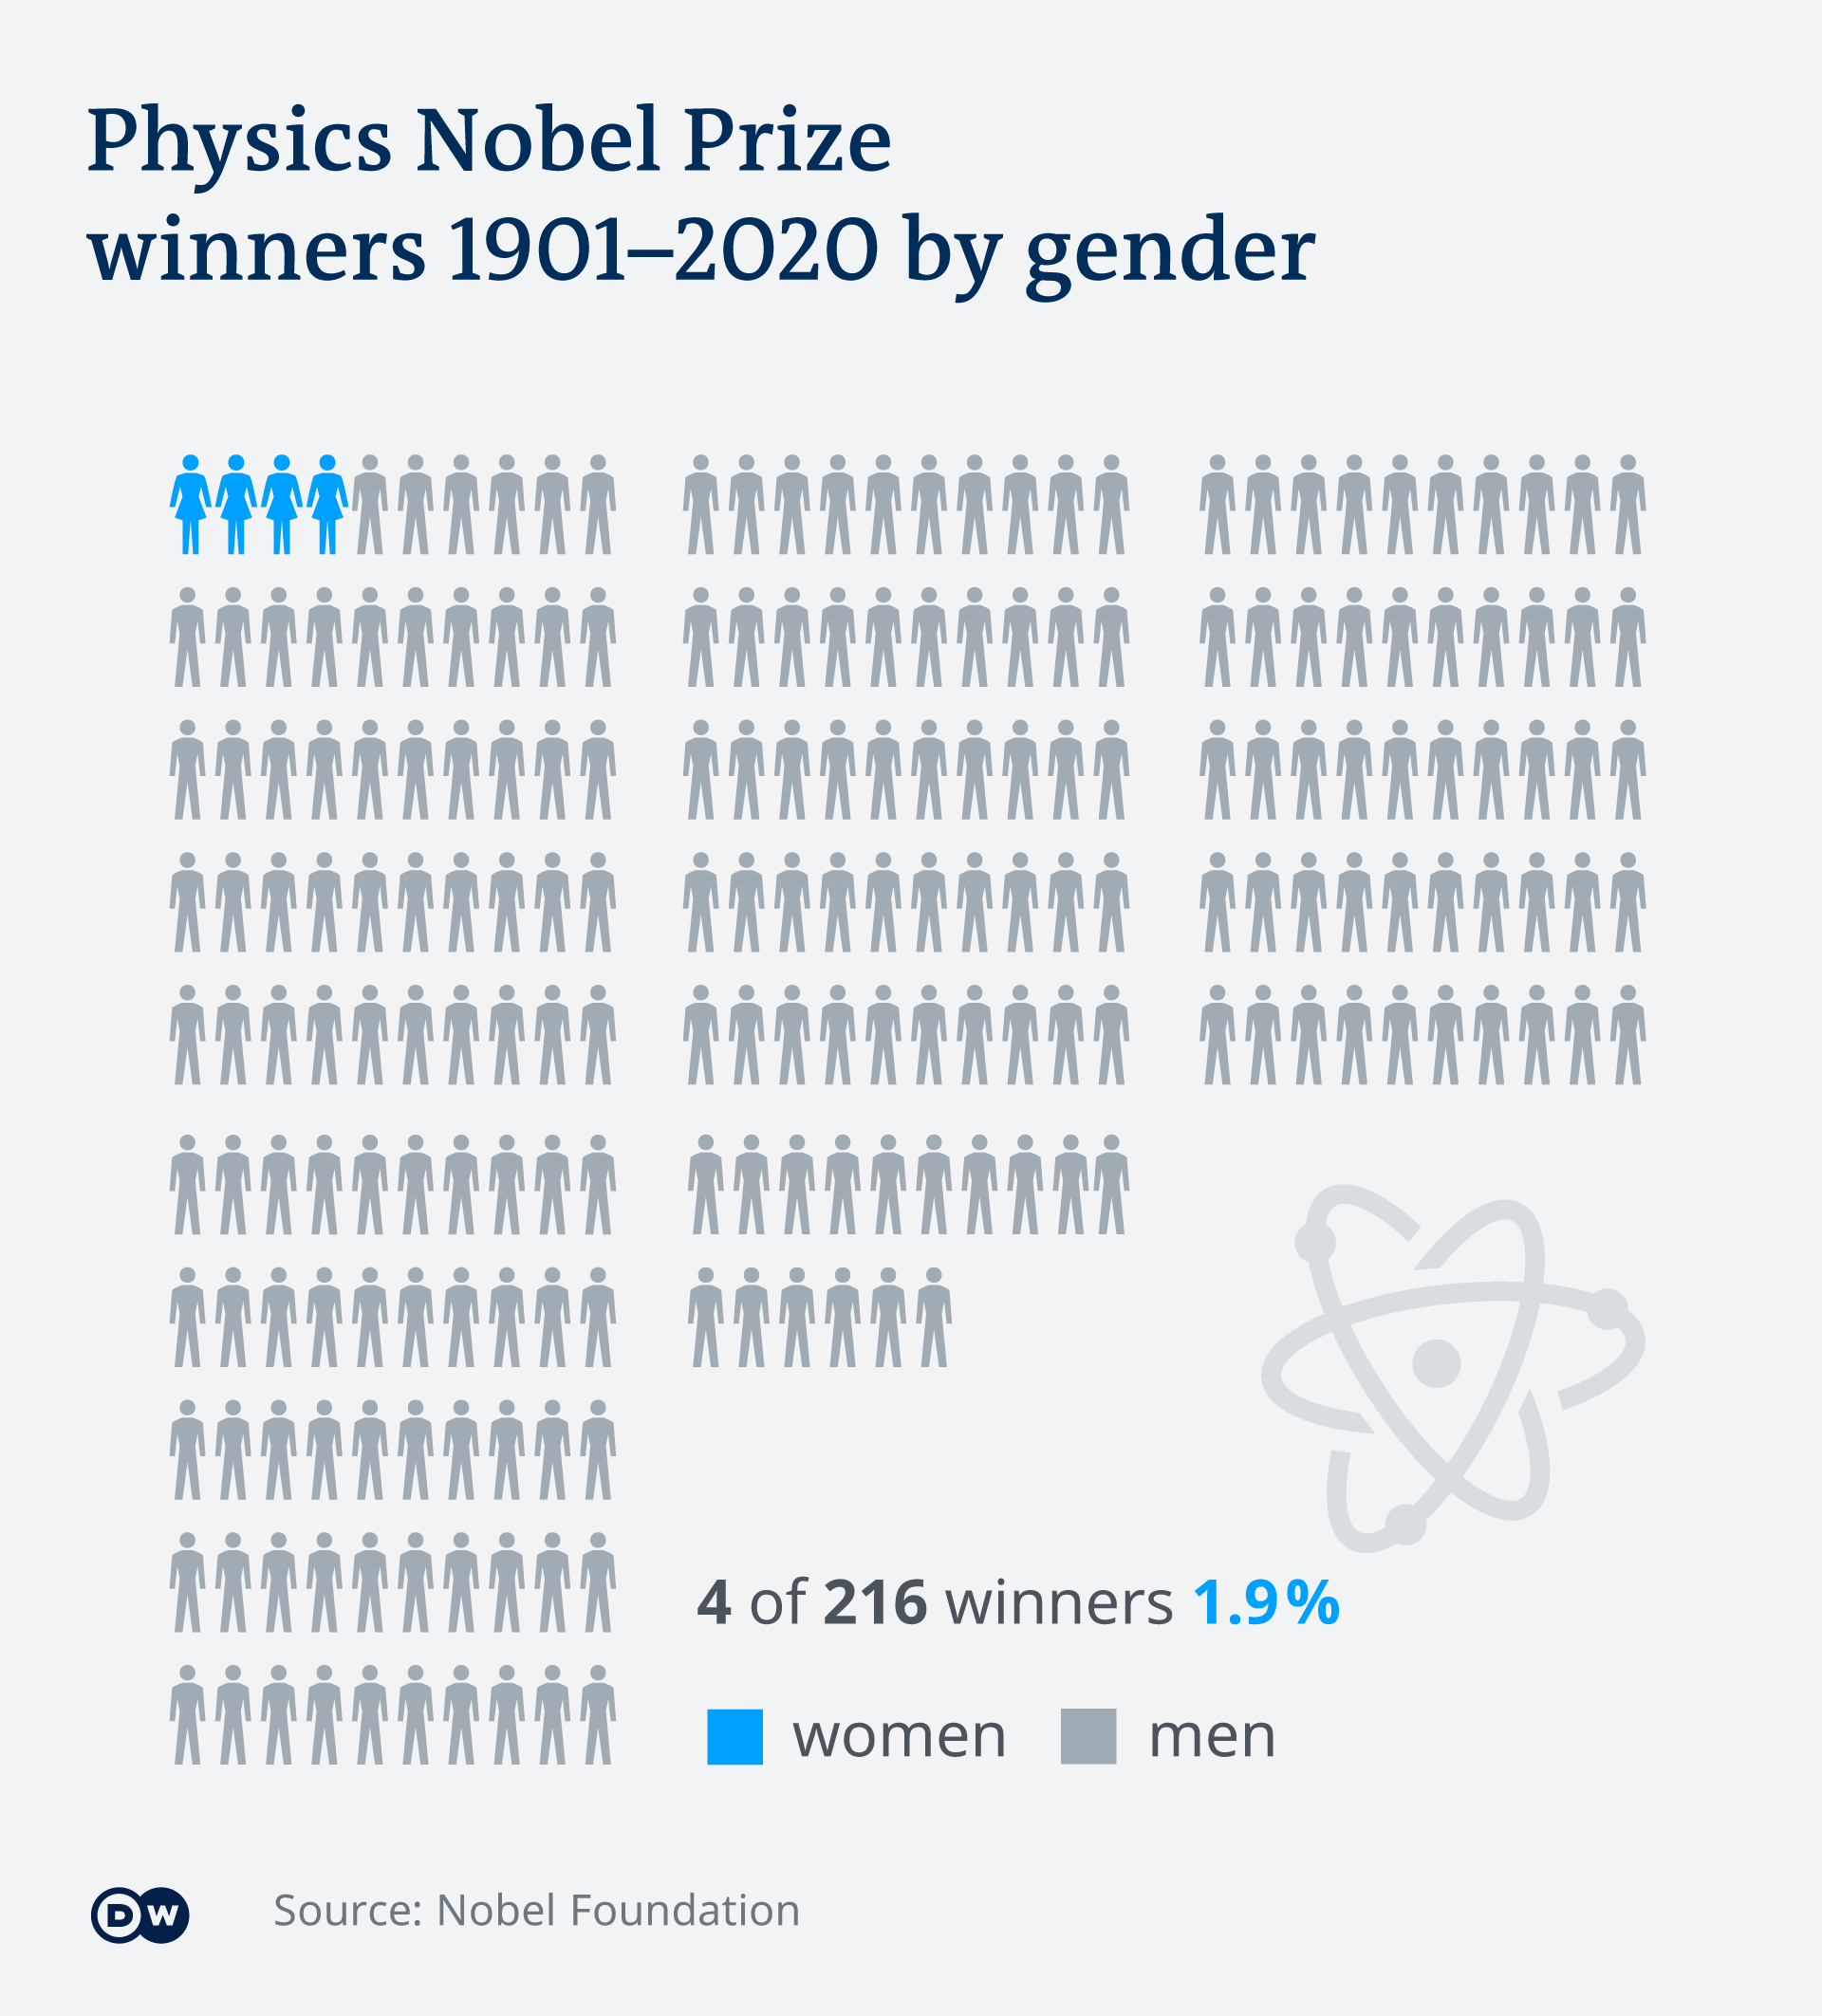 Infographic showing the Nobel Prize winners in physics by gender 1901-2020